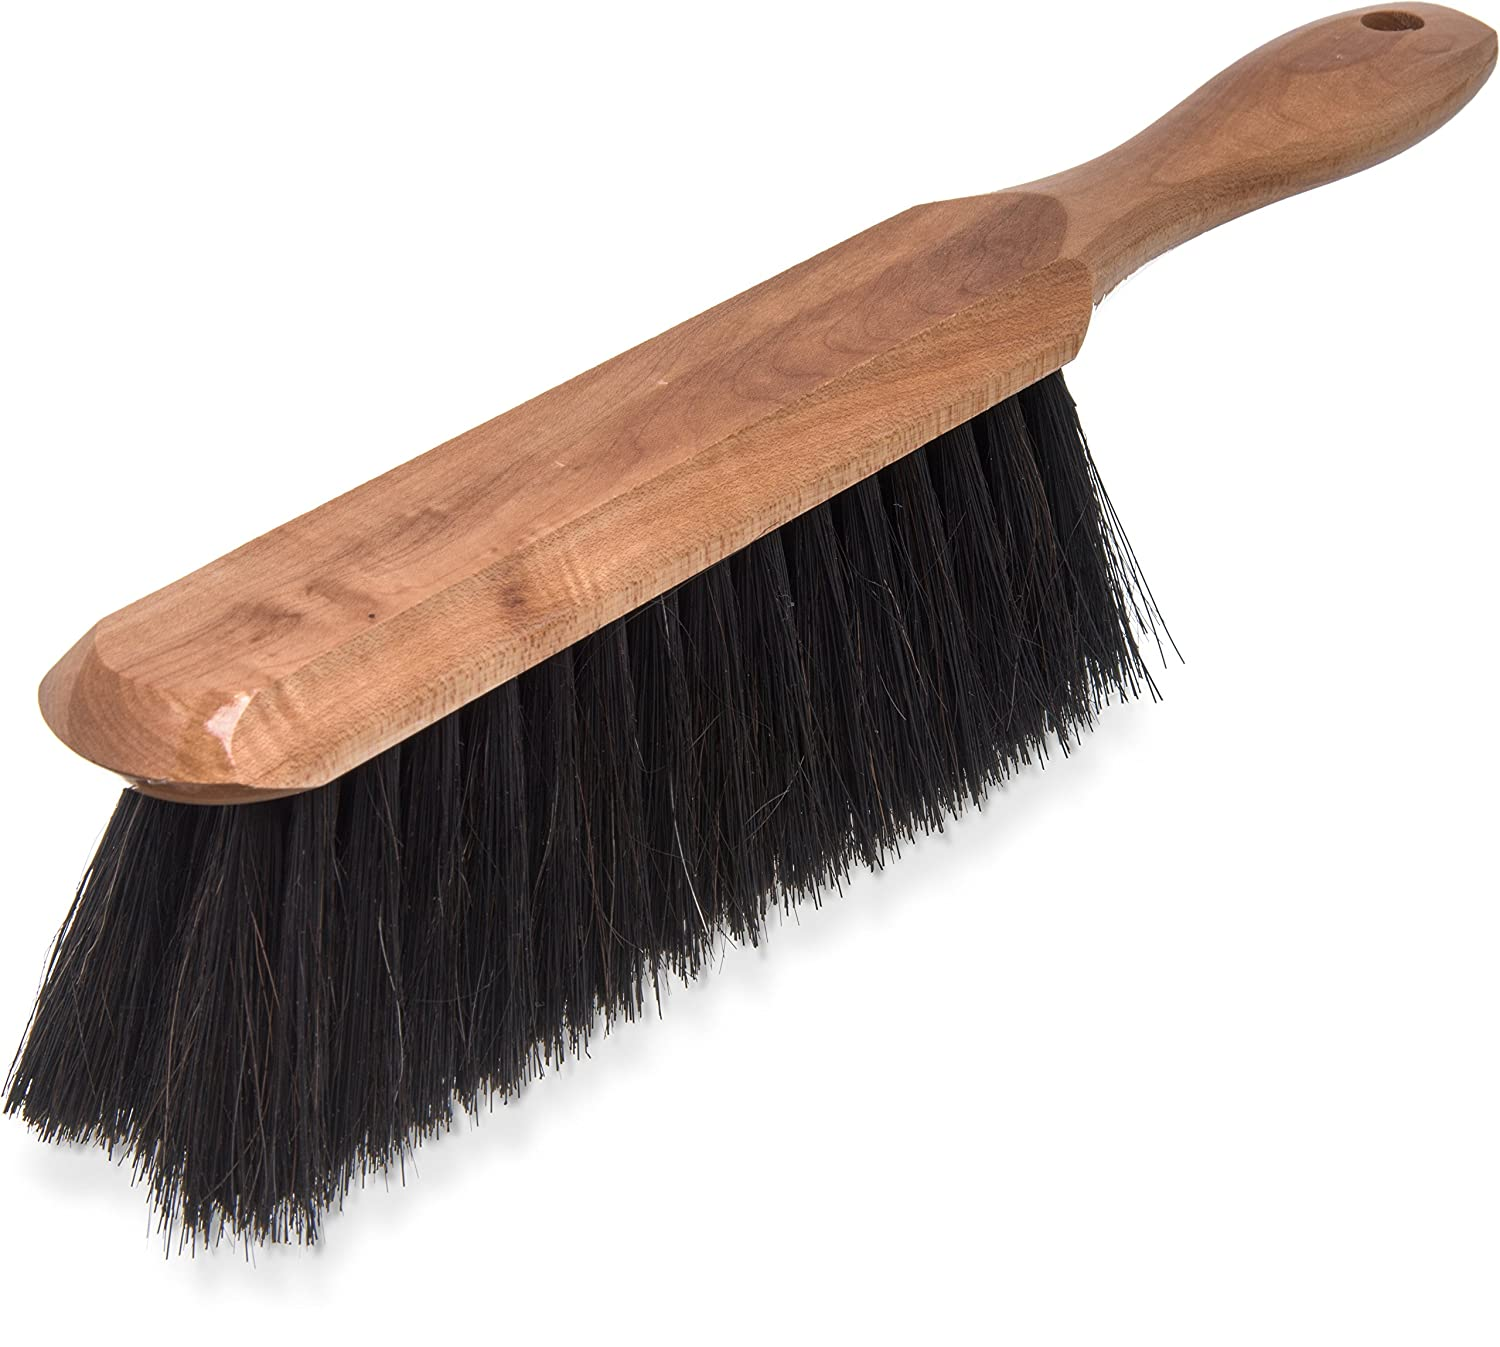 Carlisle 4048500 Sparta Commercial Wood Handle Counter Brush, 13' Overall Length, Horsehair/Polypropylene Blend 13 Overall Length Carlisle Corporation 40485-00